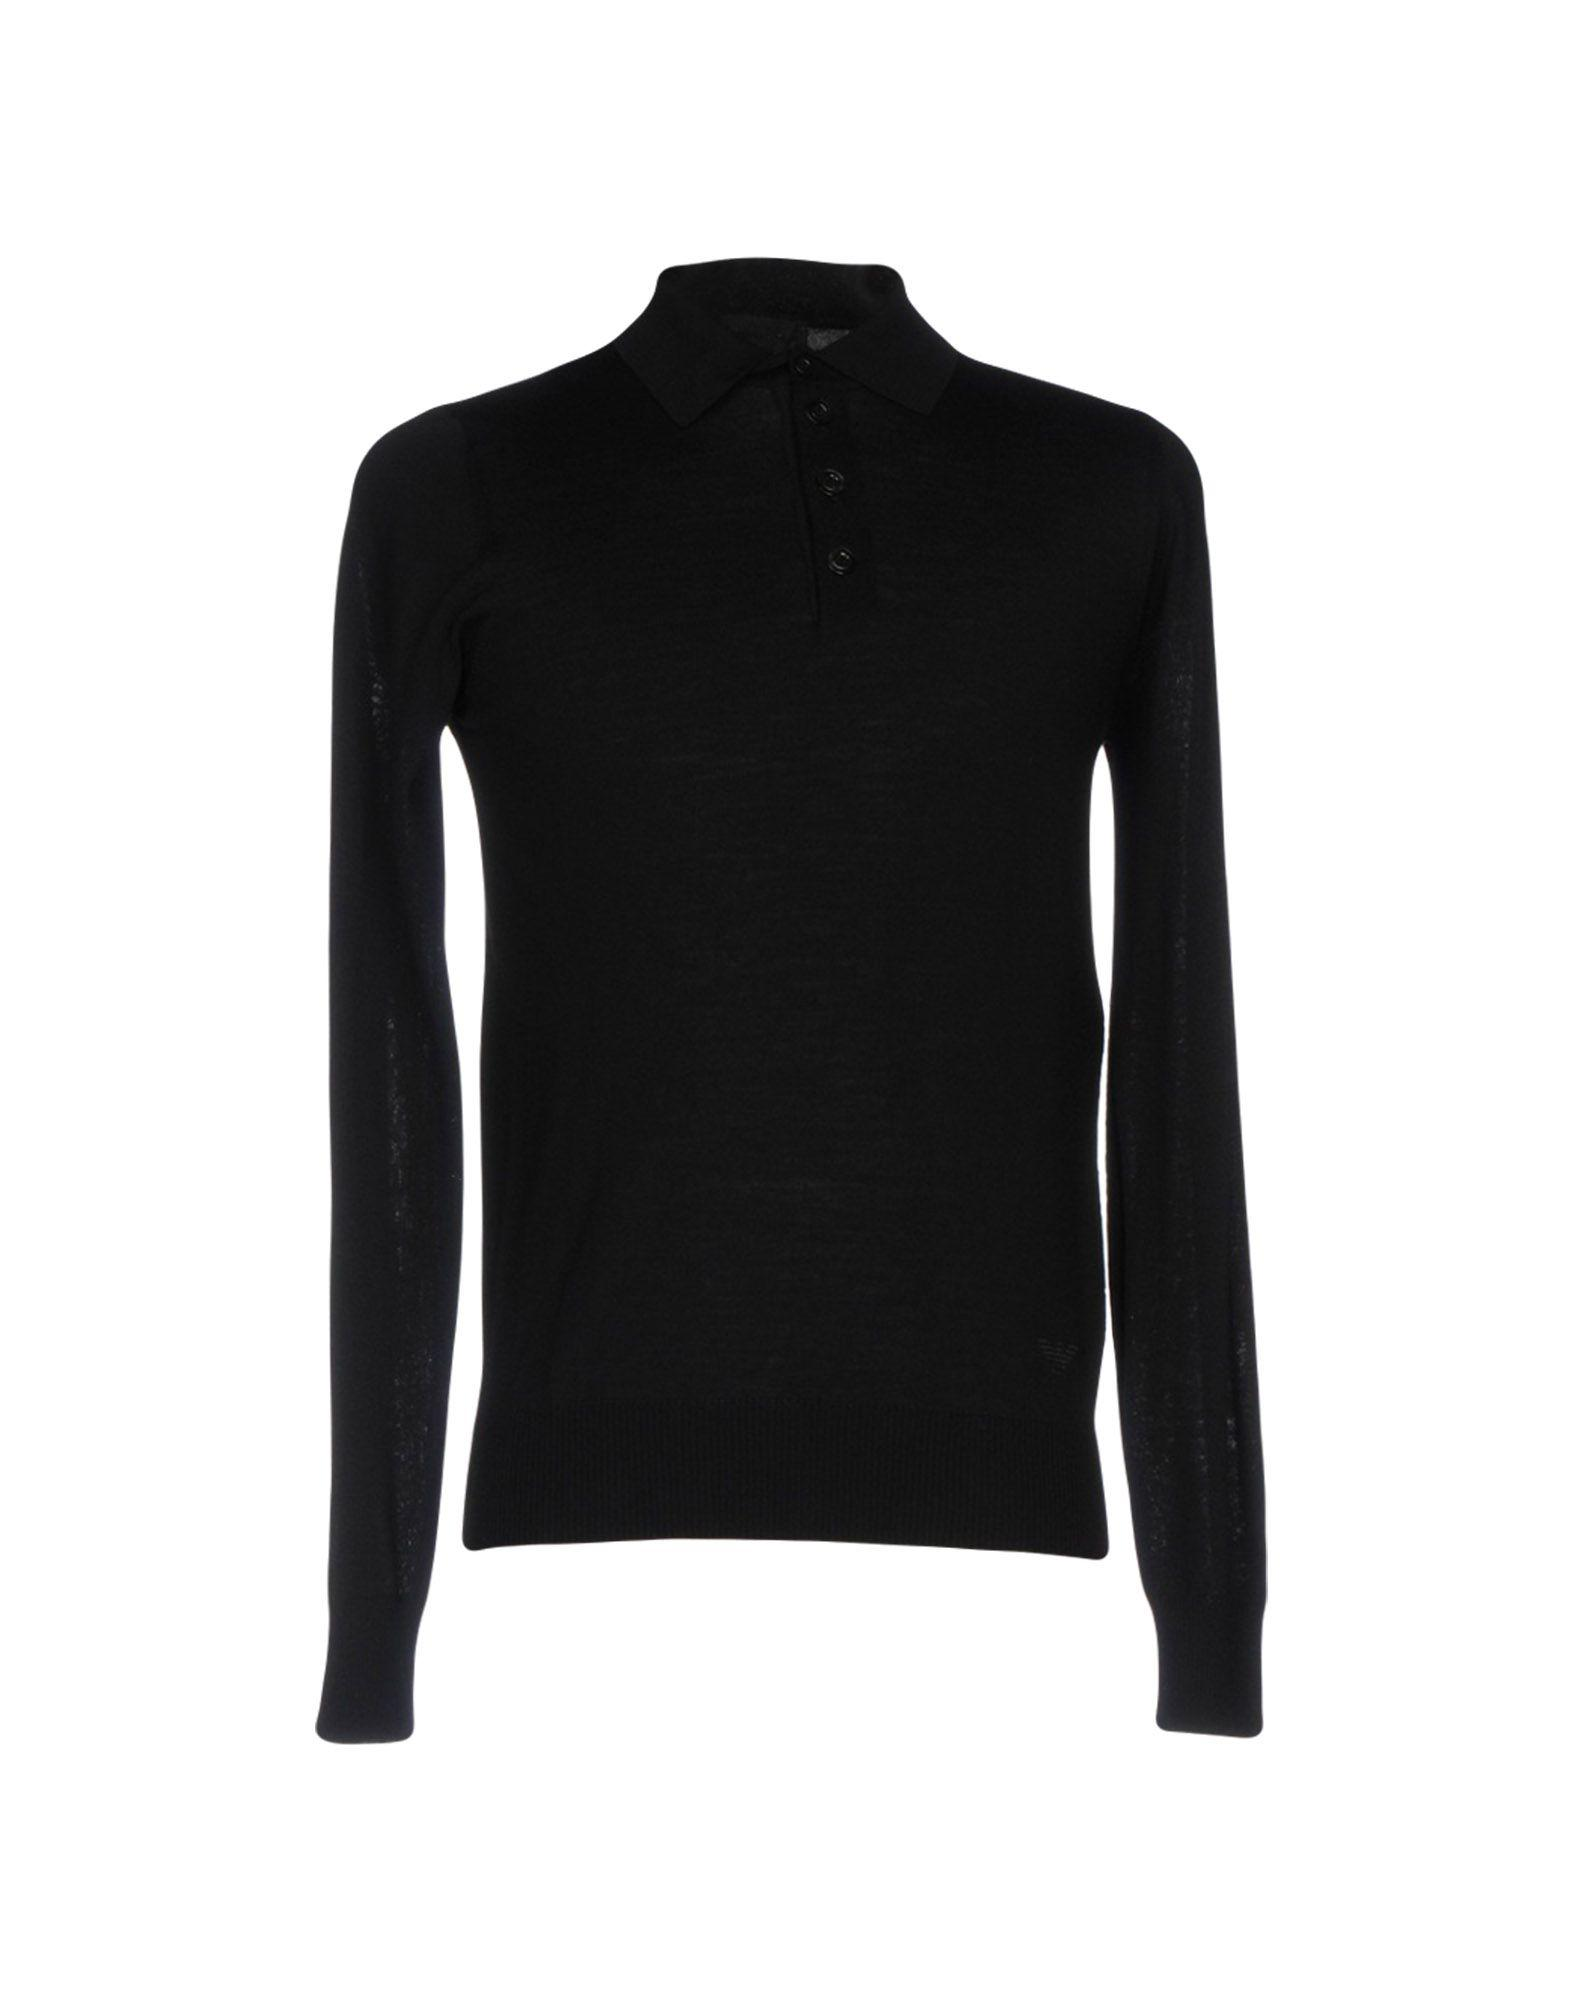 lyst emporio armani sweater in black for men. Black Bedroom Furniture Sets. Home Design Ideas